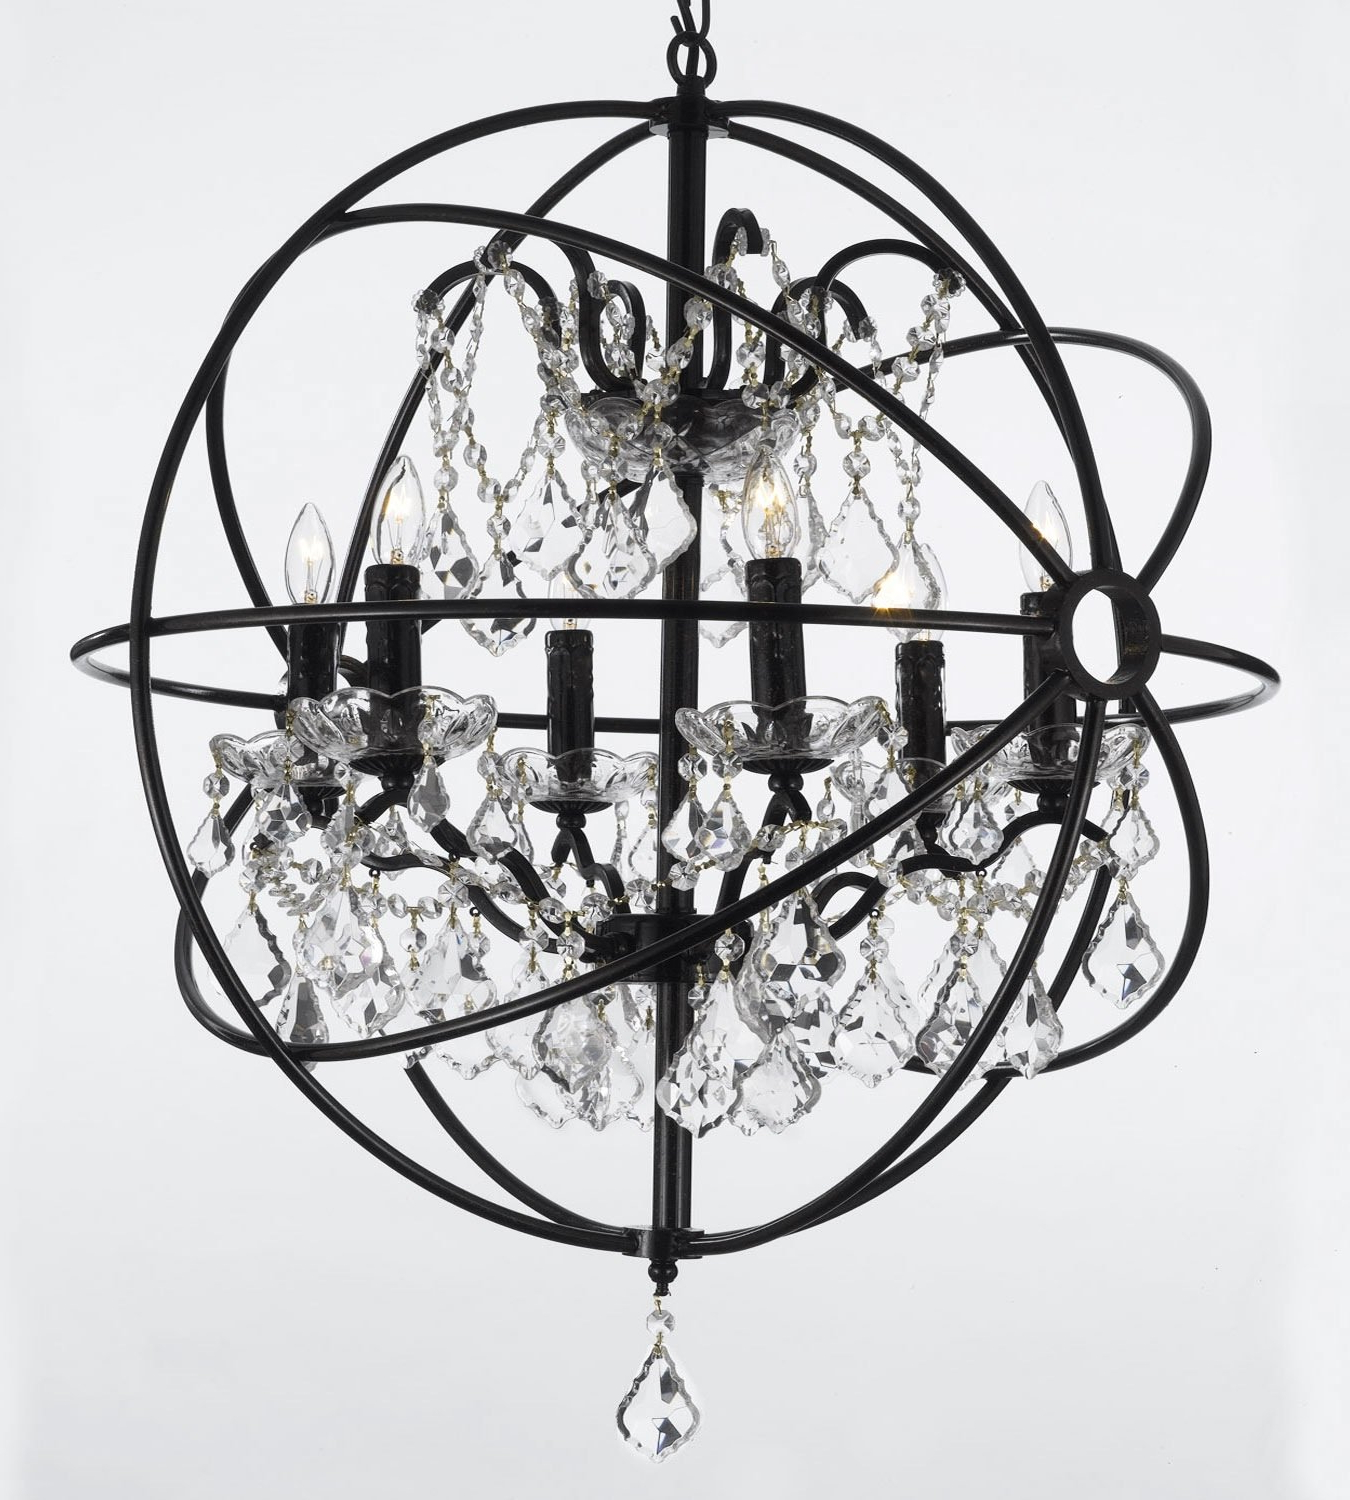 Calderdale Orb 6 Light Globe Chandelier For Well Liked Eastbourne 6 Light Unique / Statement Chandeliers (View 1 of 20)